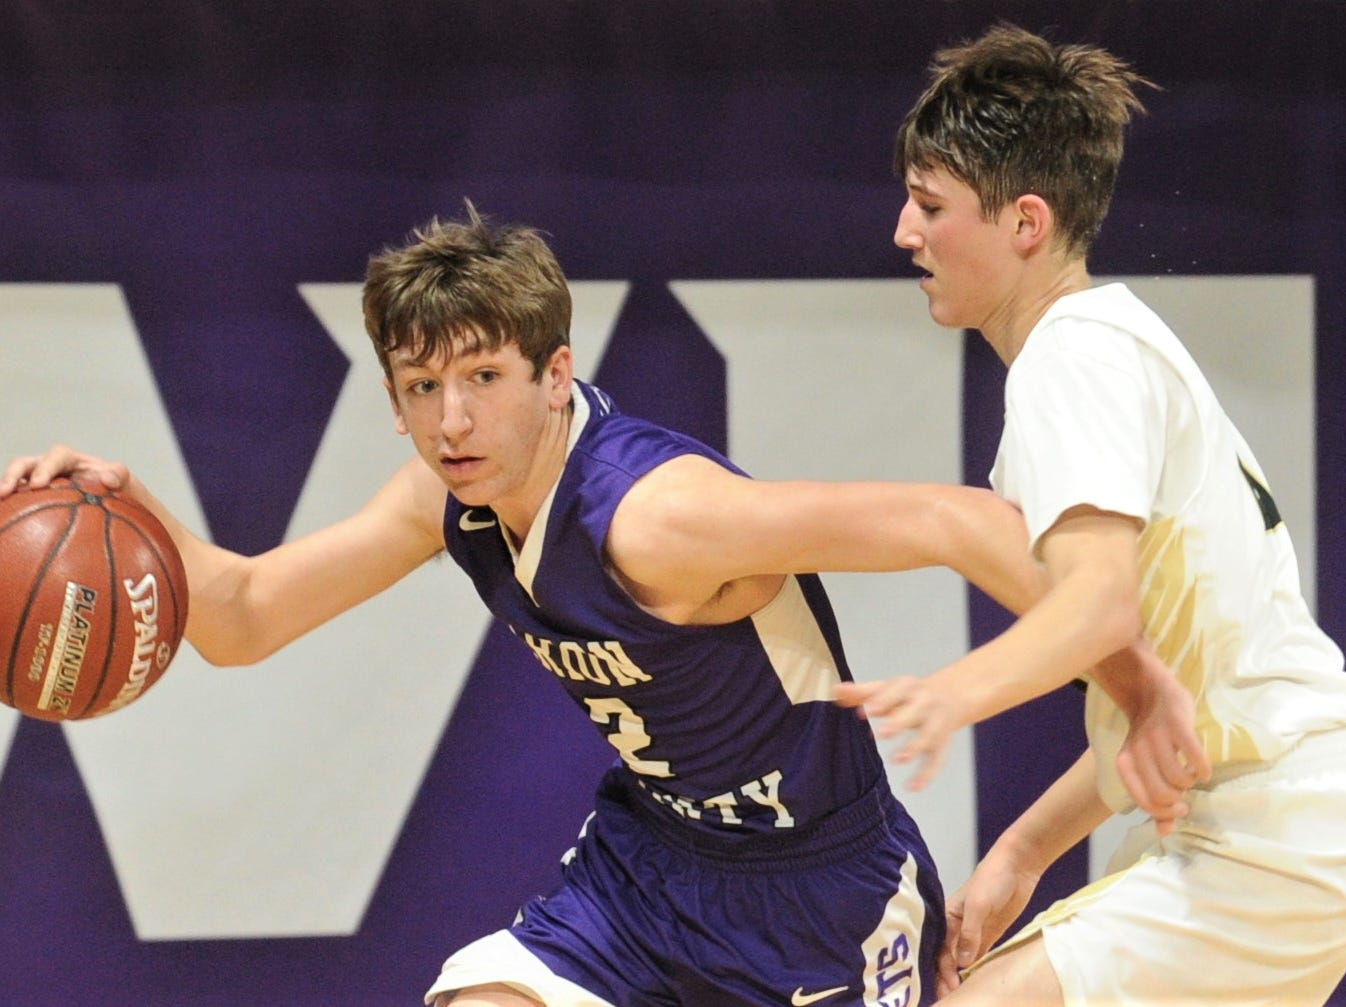 Irion County's Kaden Councilman, left, tries to get around a Jayton defender. The Jaybirds beat Irion County 47-32 in the Region II-1A championship game Saturday, March 2, 2019, at Abilene Christian's Moody Coliseum.